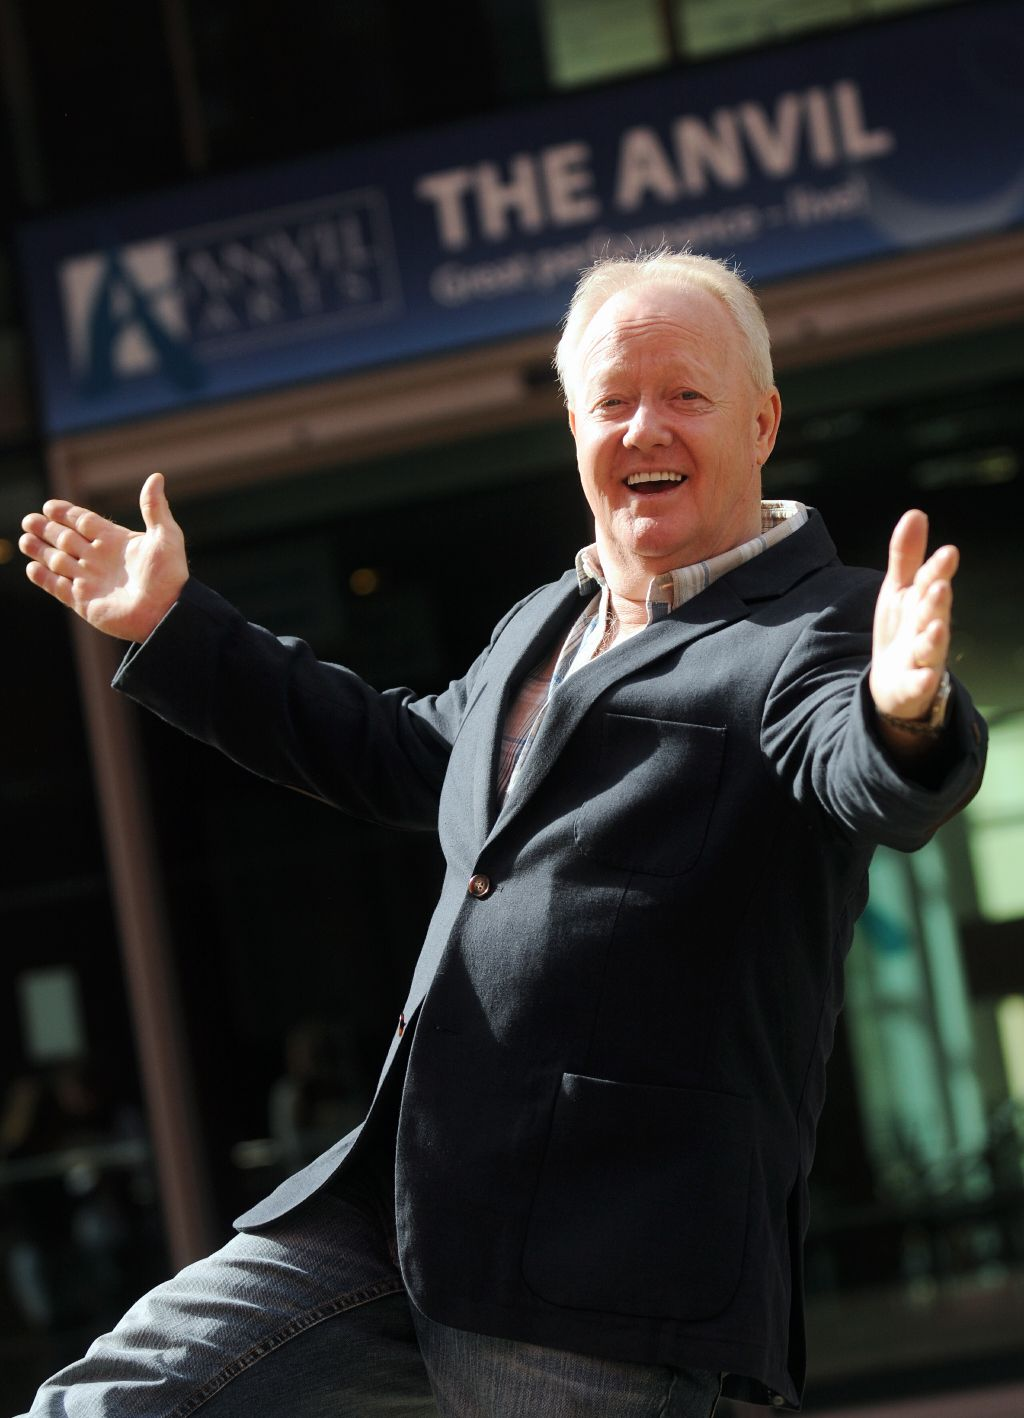 Keith Chegwin will be appearing in the 2014 Anvil panto